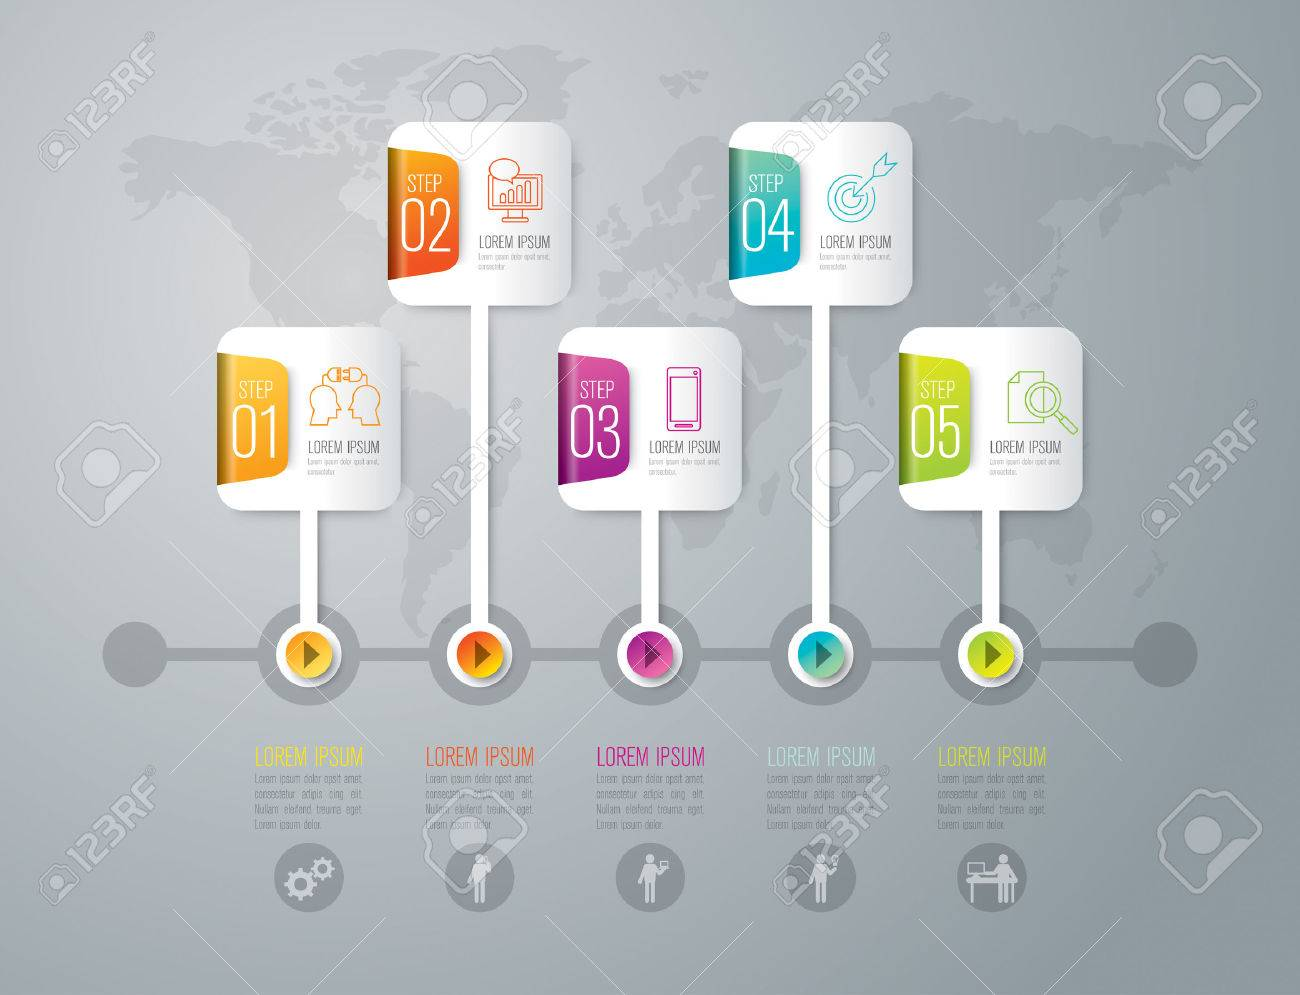 Infographic design template and marketing icons. - 44207822